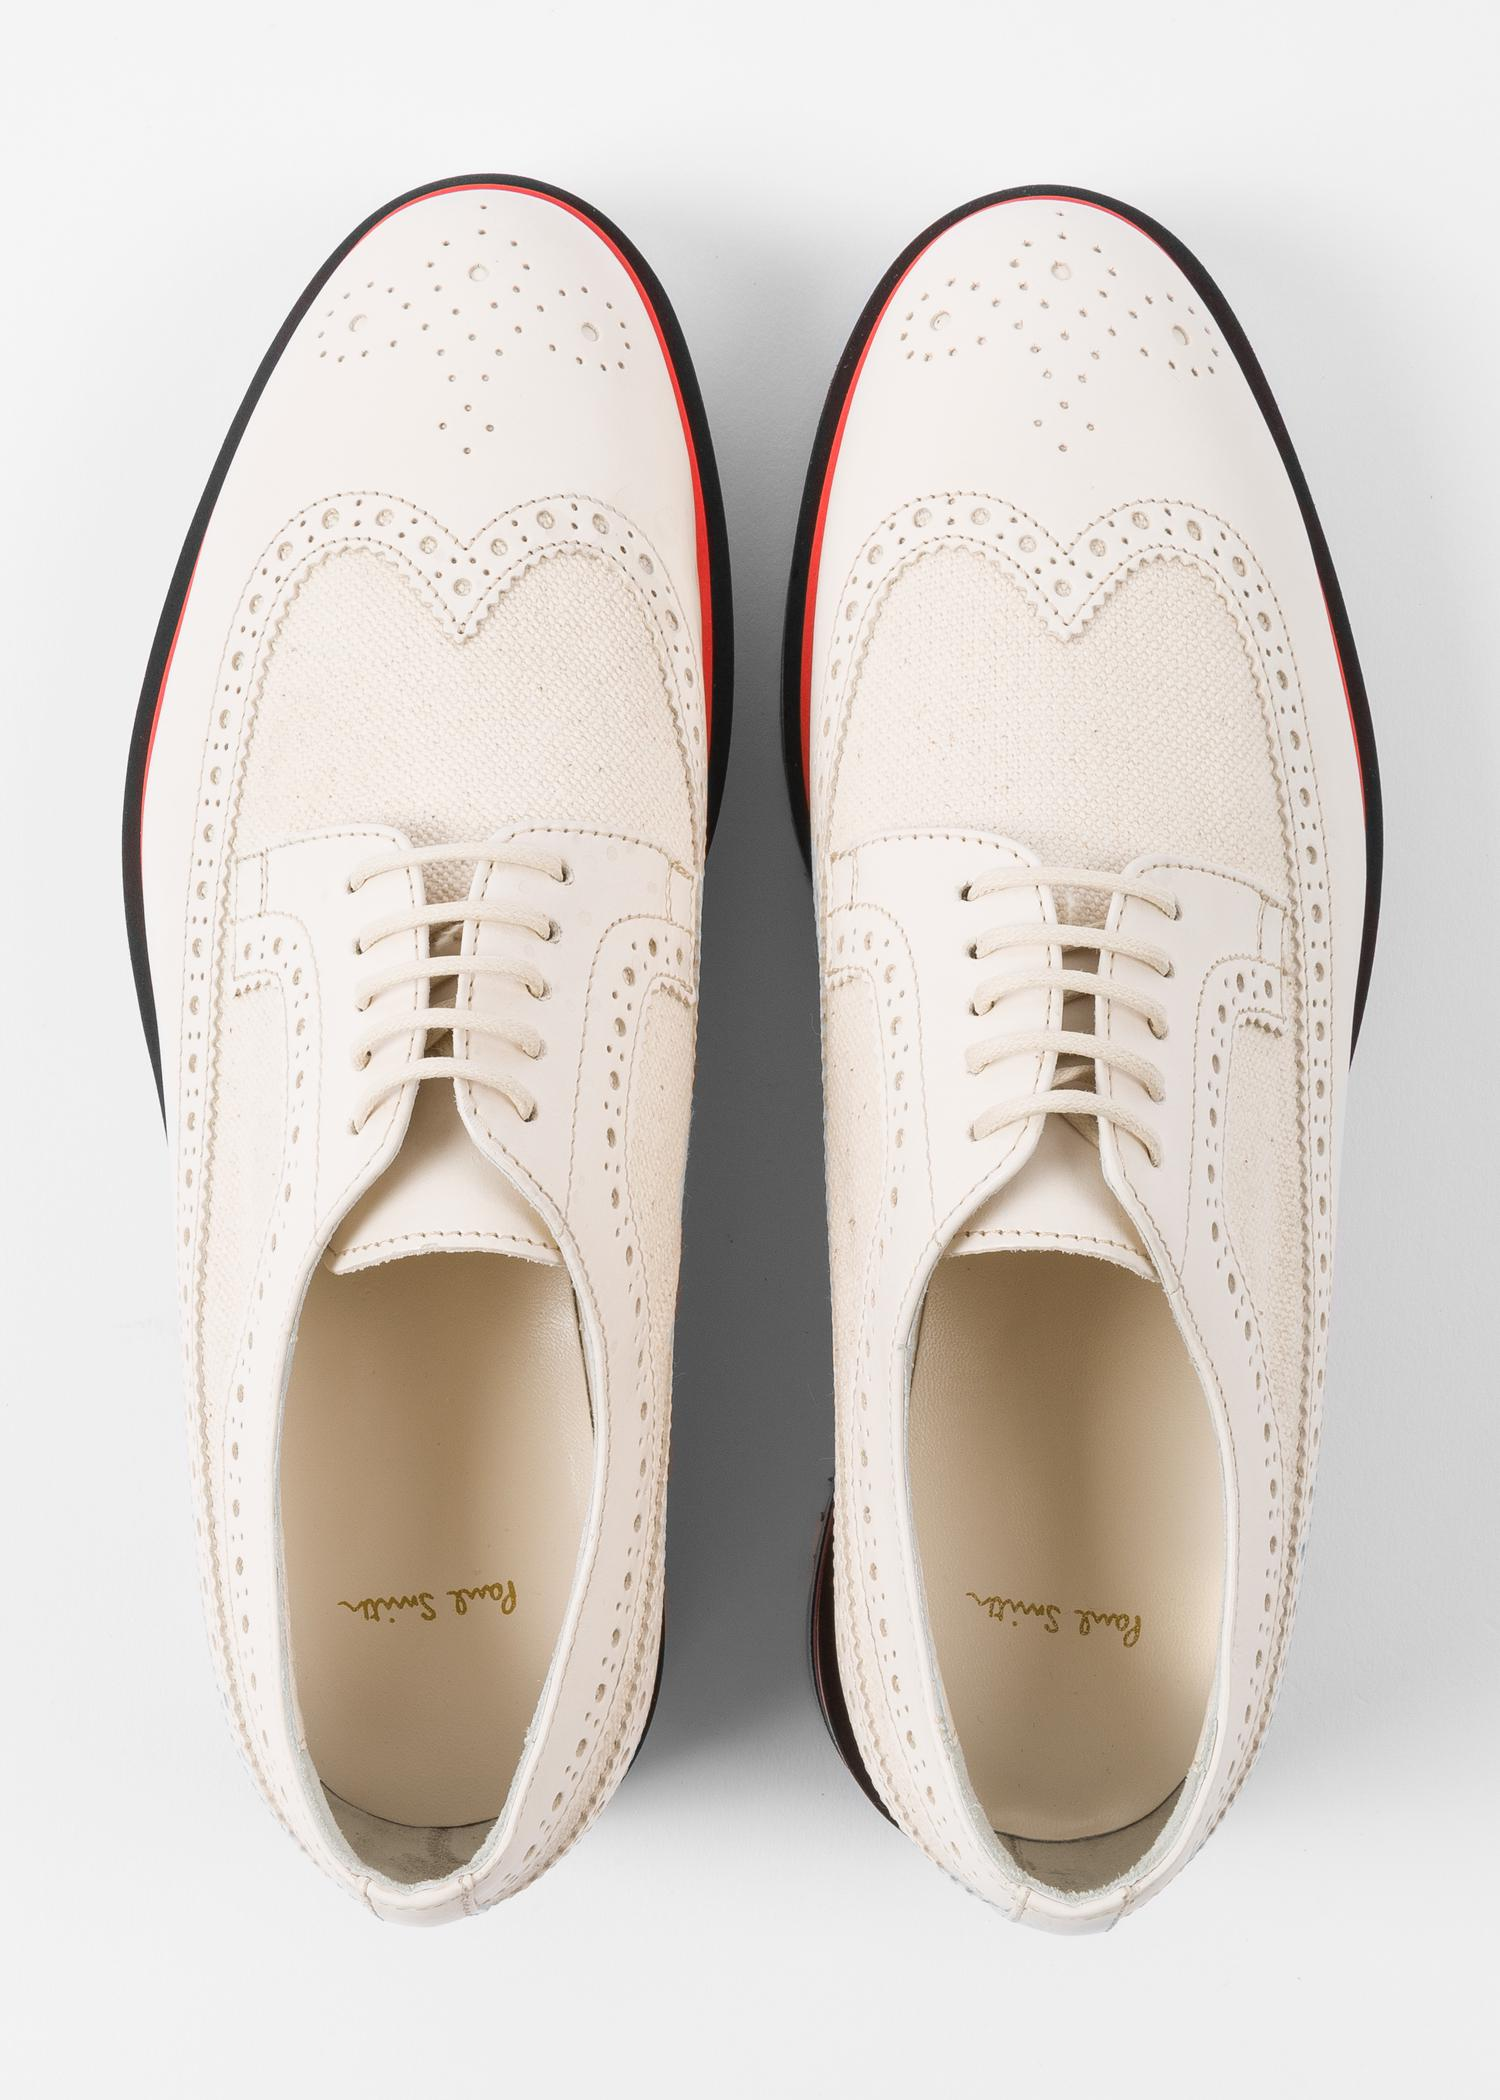 15ee887027 Paul Smith Off-White Leather 'Grand' Brogues With Striped Soles in ...